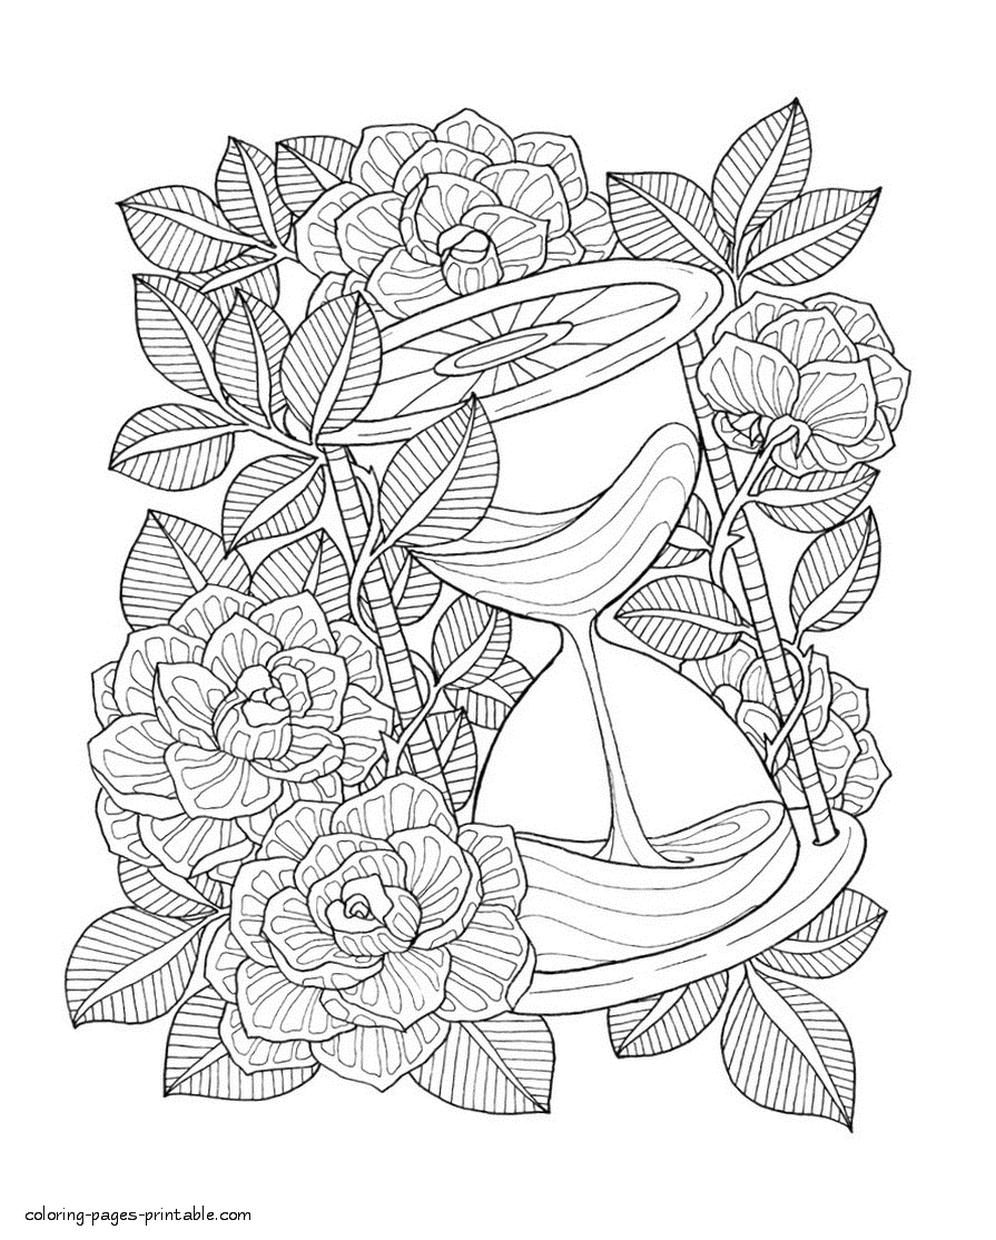 Adult Coloring Pages Floral Patterns Printable jgl7